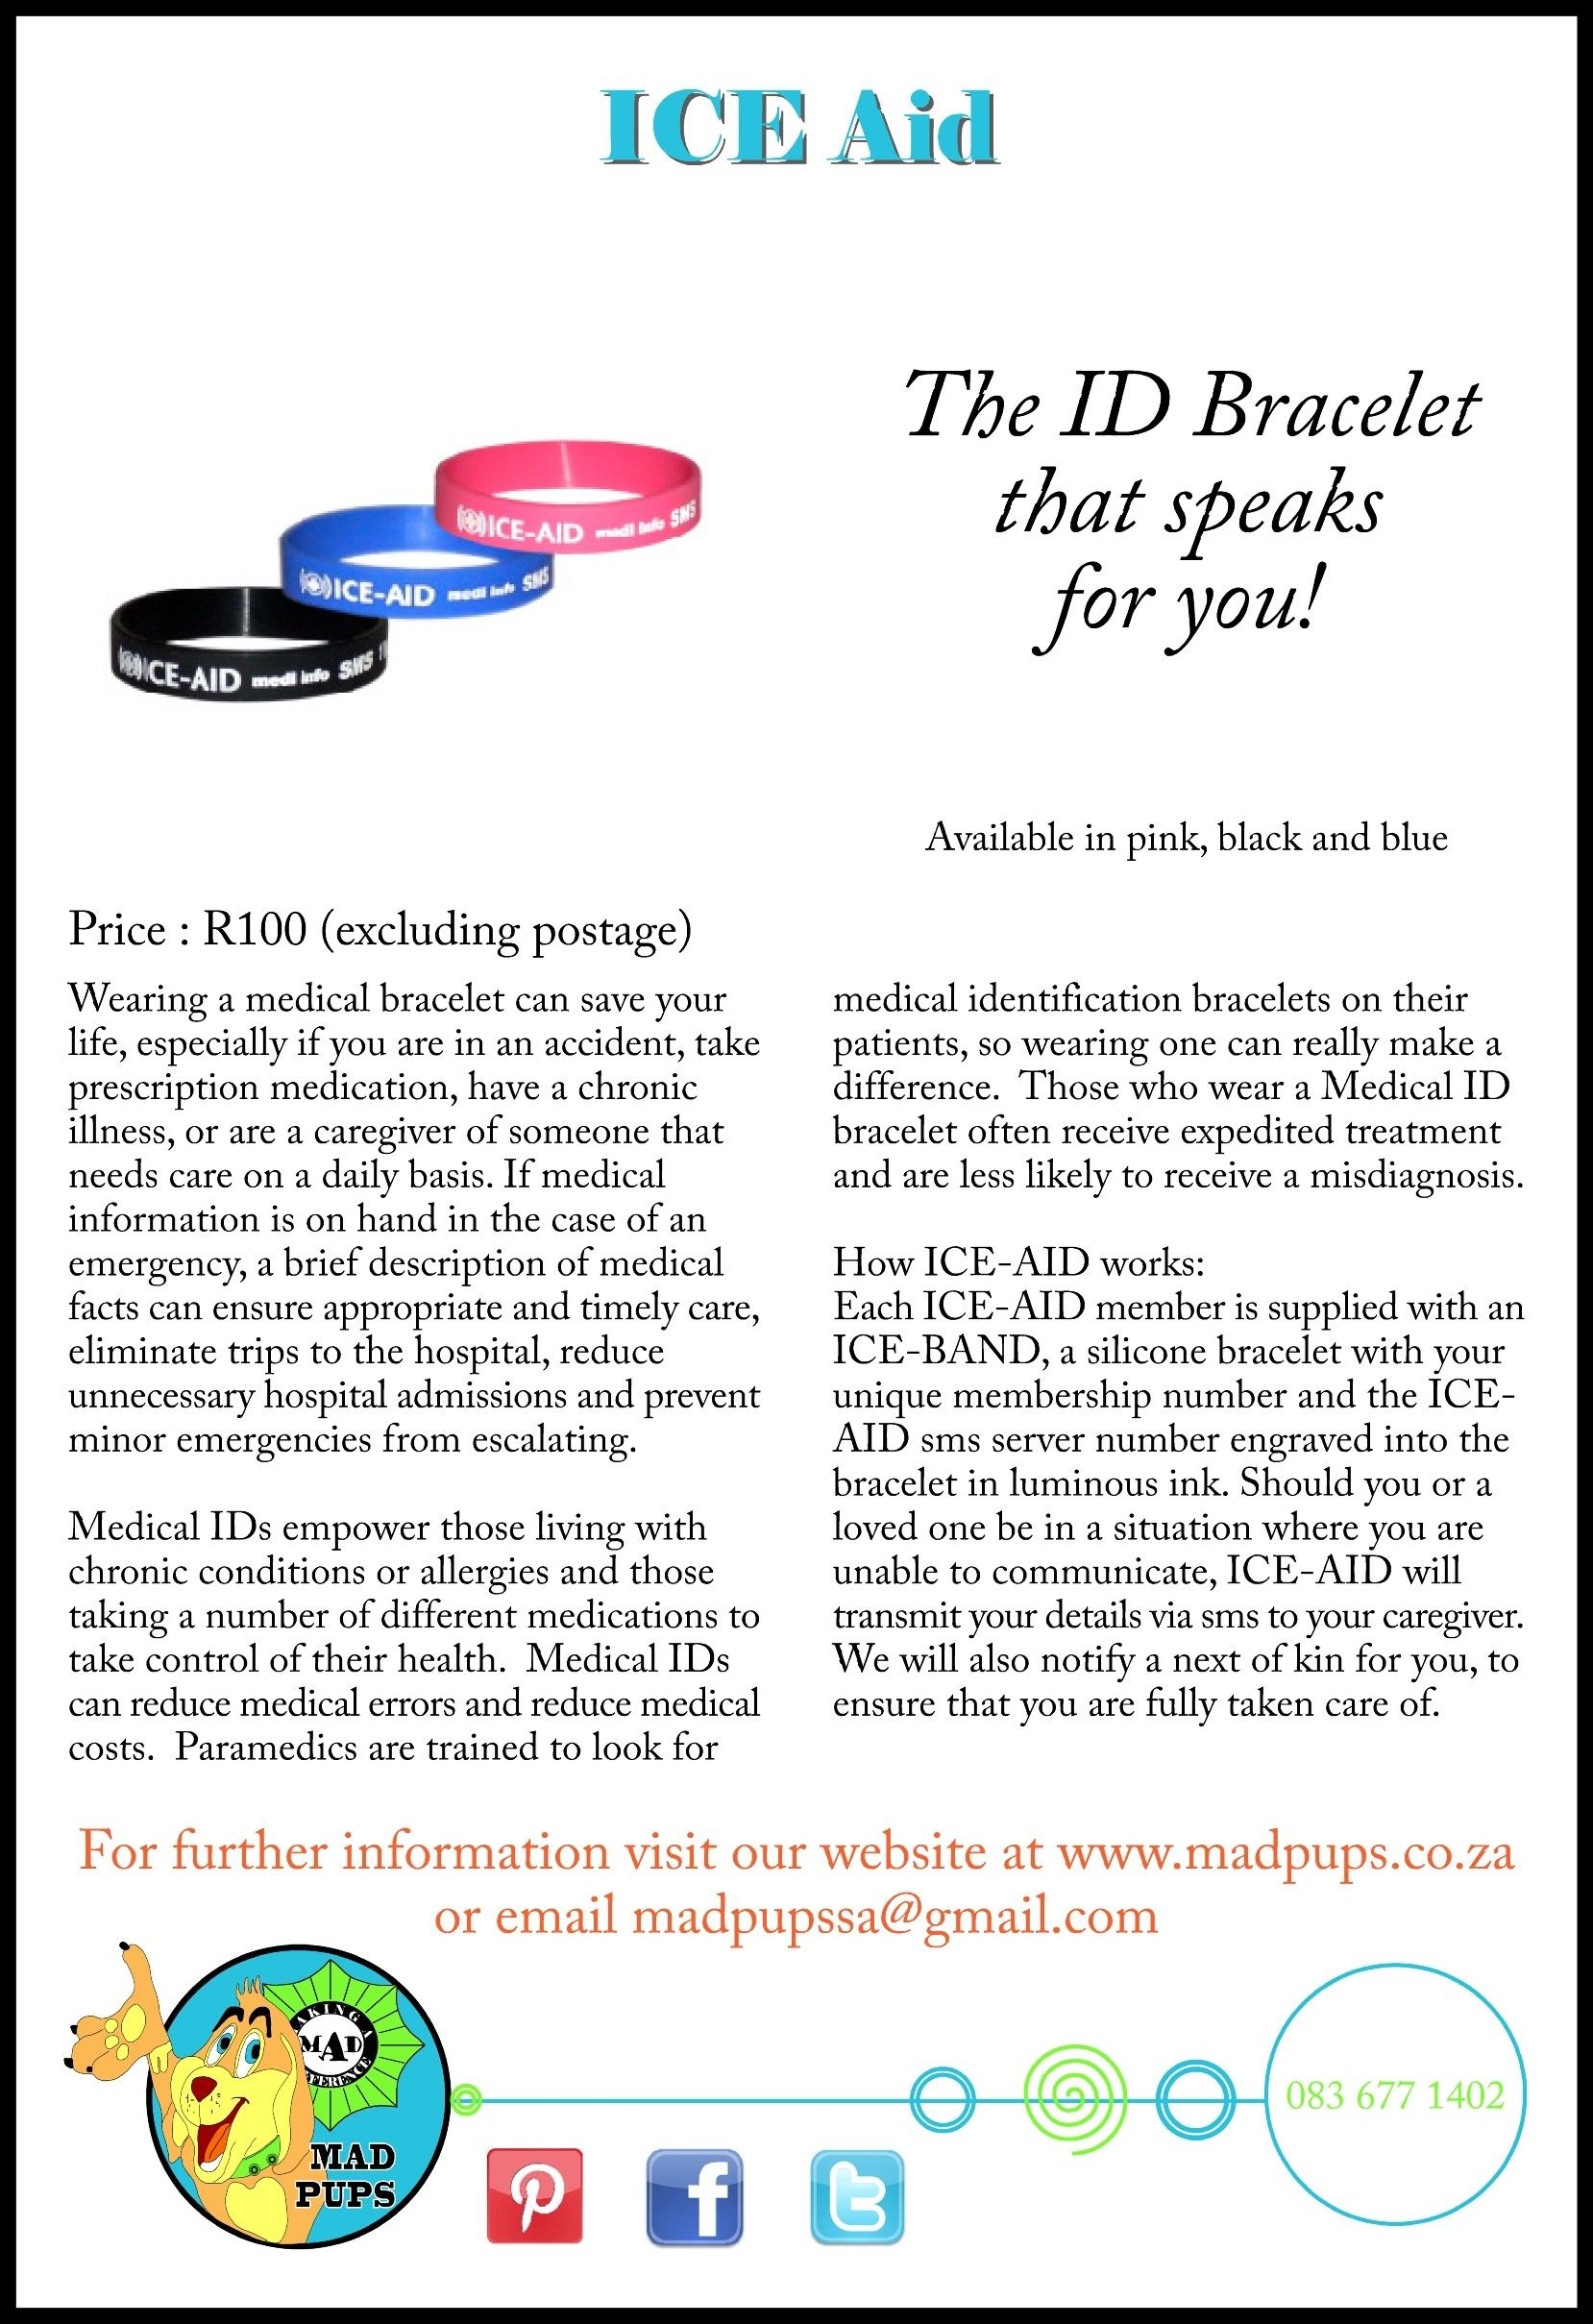 The ID bracelet that speaks for you! Available from www.madpups.co.za